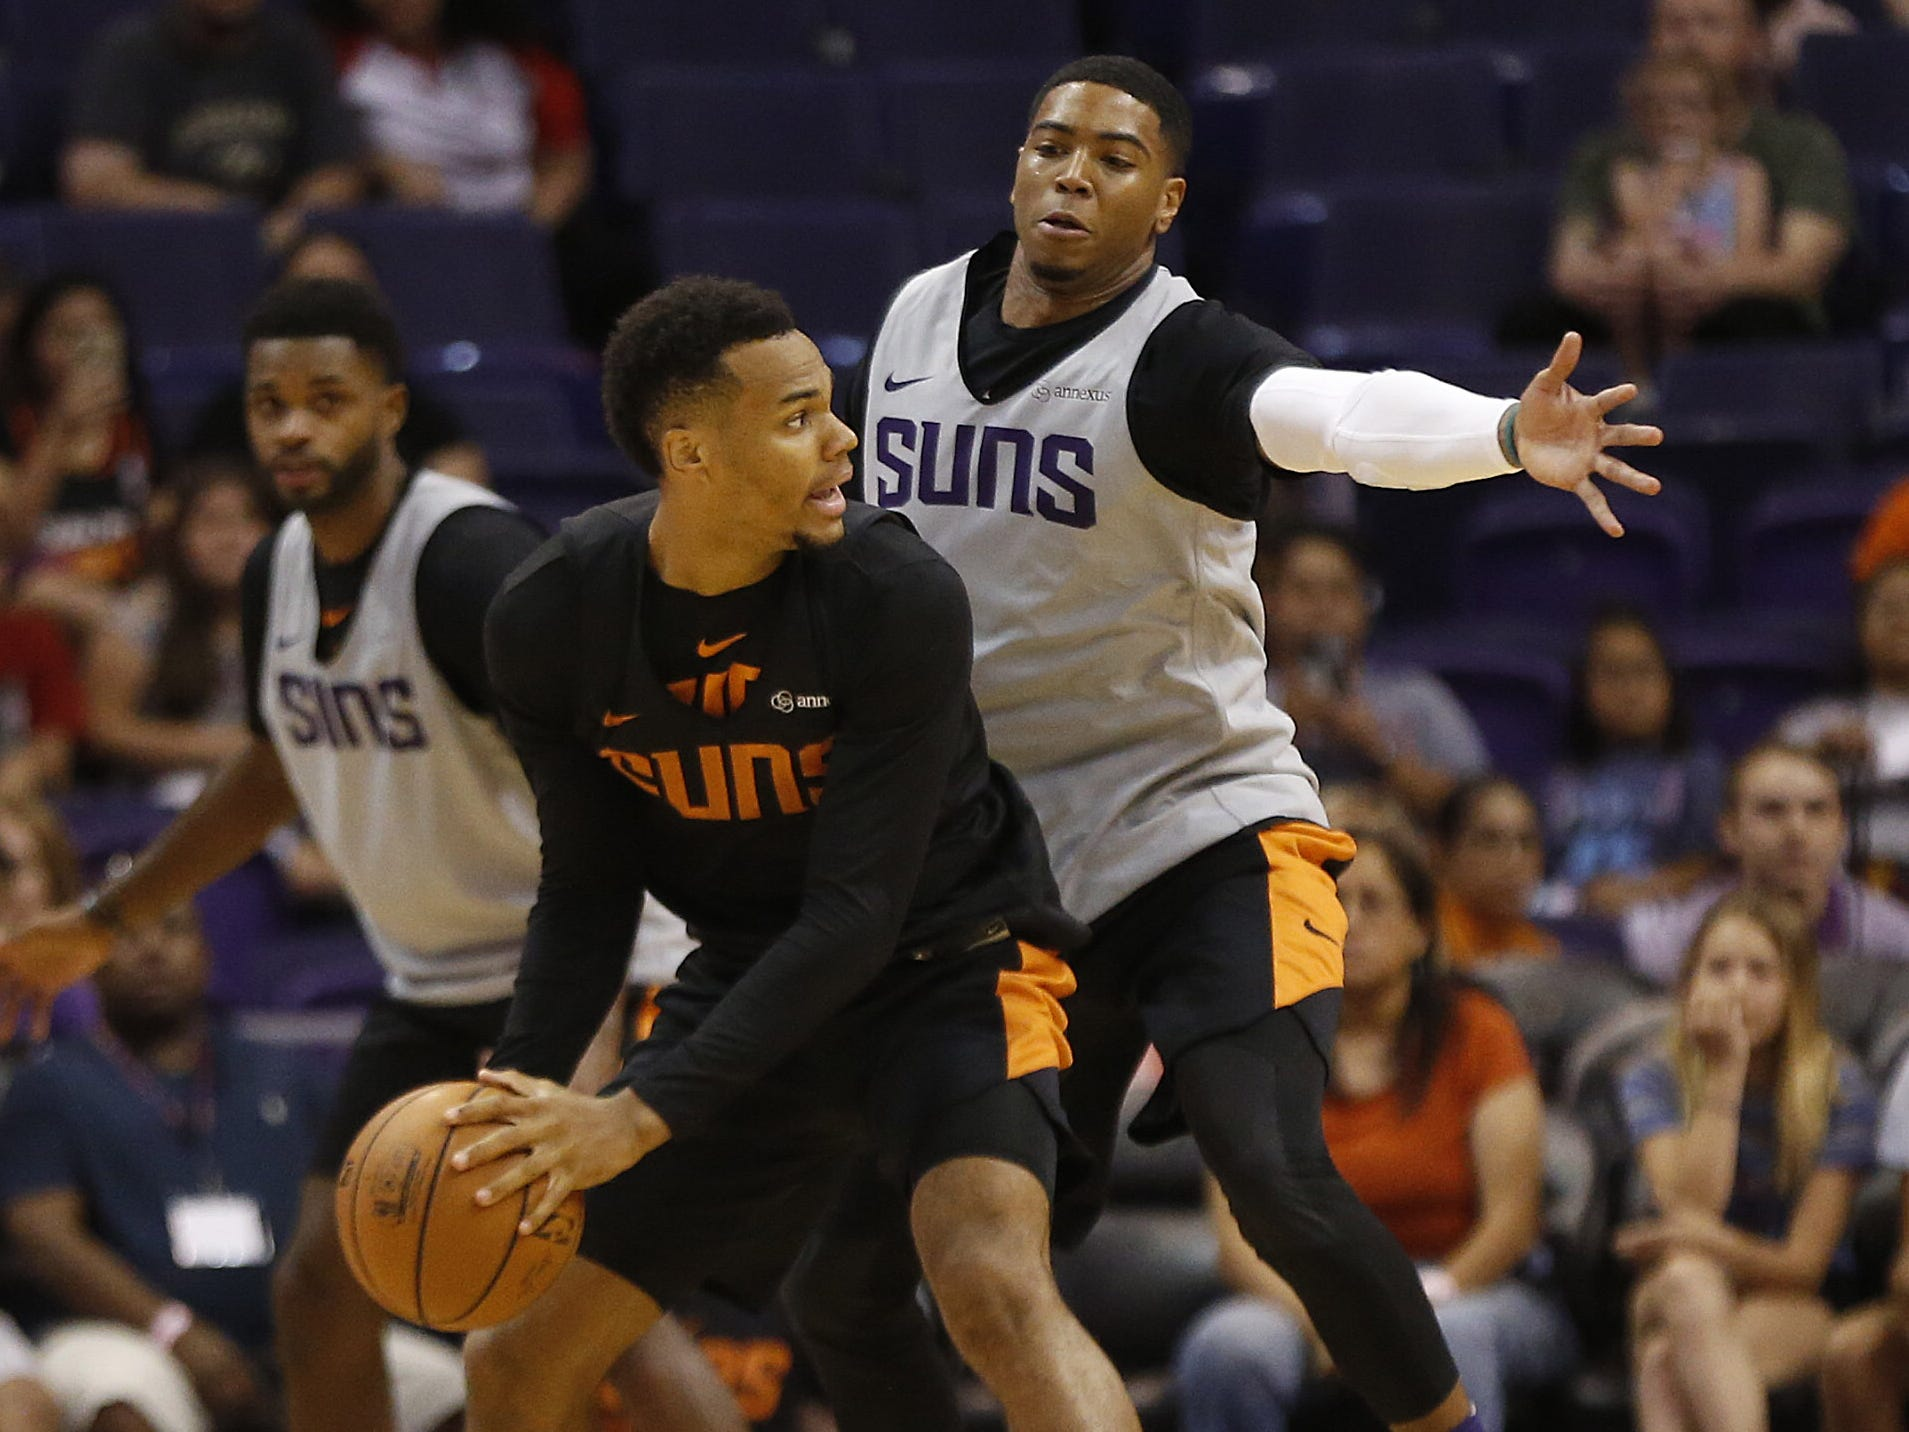 Suns Shaquille Harrison defends Ellie Okobo during an Open Practice at Talking Stick Resort Arena in Phoenix, Ariz. on Sept. 29, 2018.